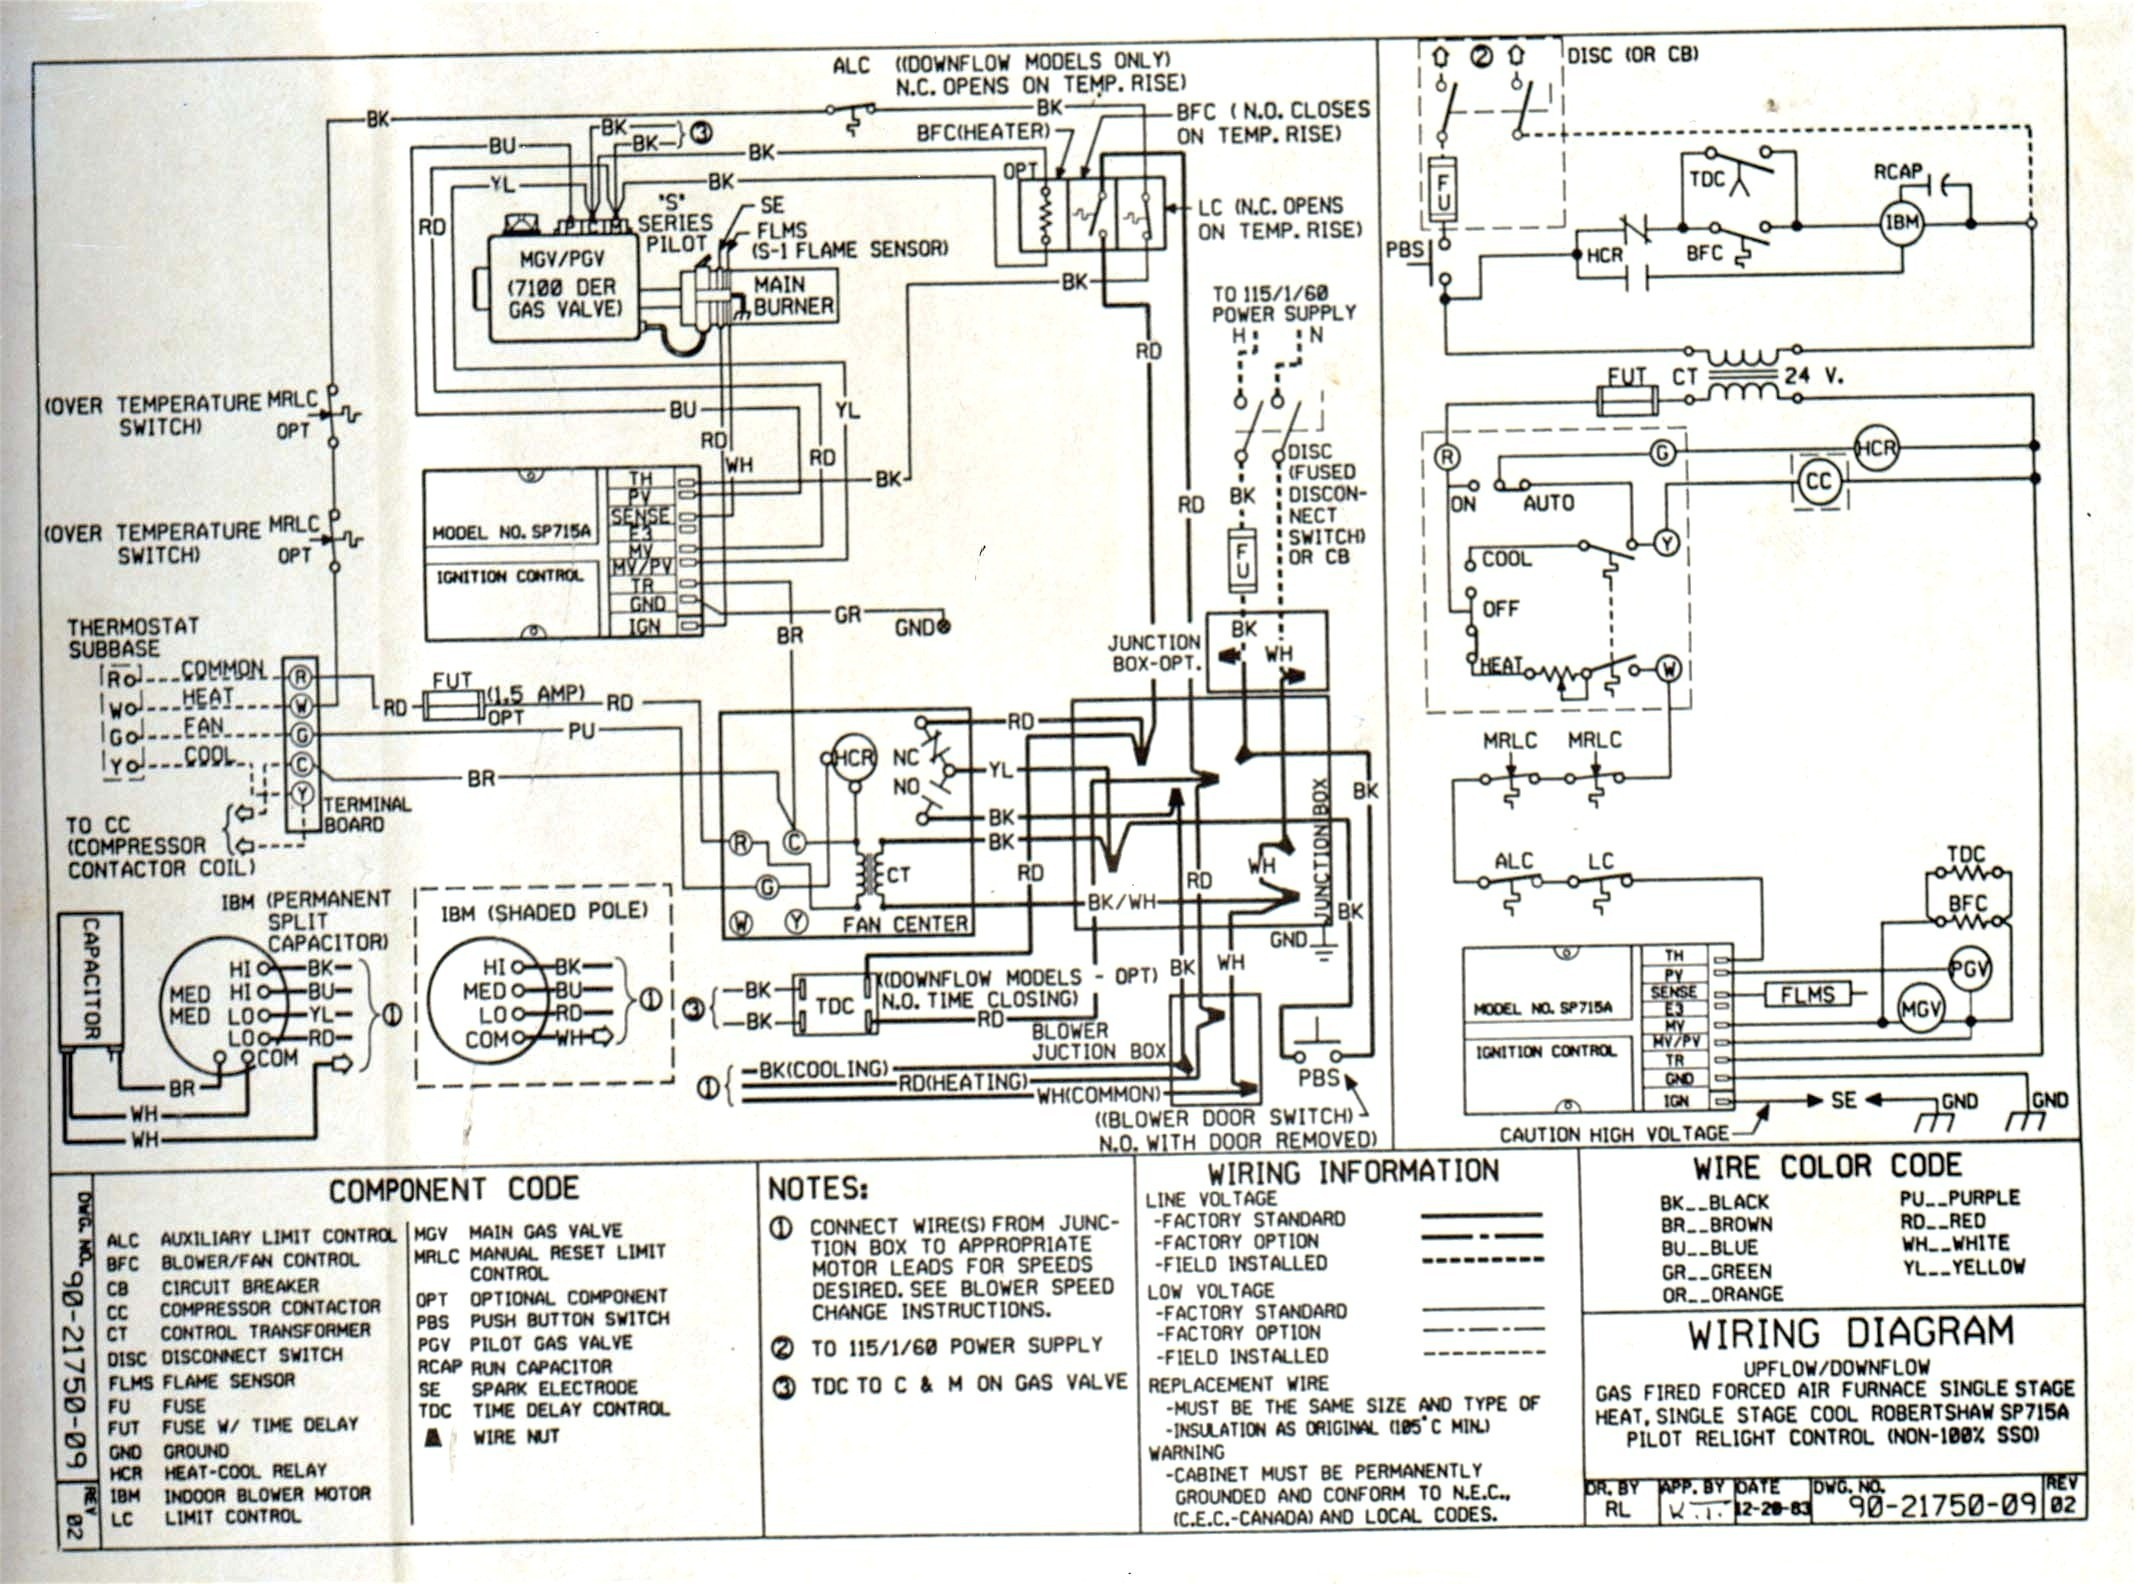 Toyota Previa Engine Diagram toyota Previa Air Conditioning Wiring Diagram Worksheet and Wiring Of Toyota Previa Engine Diagram